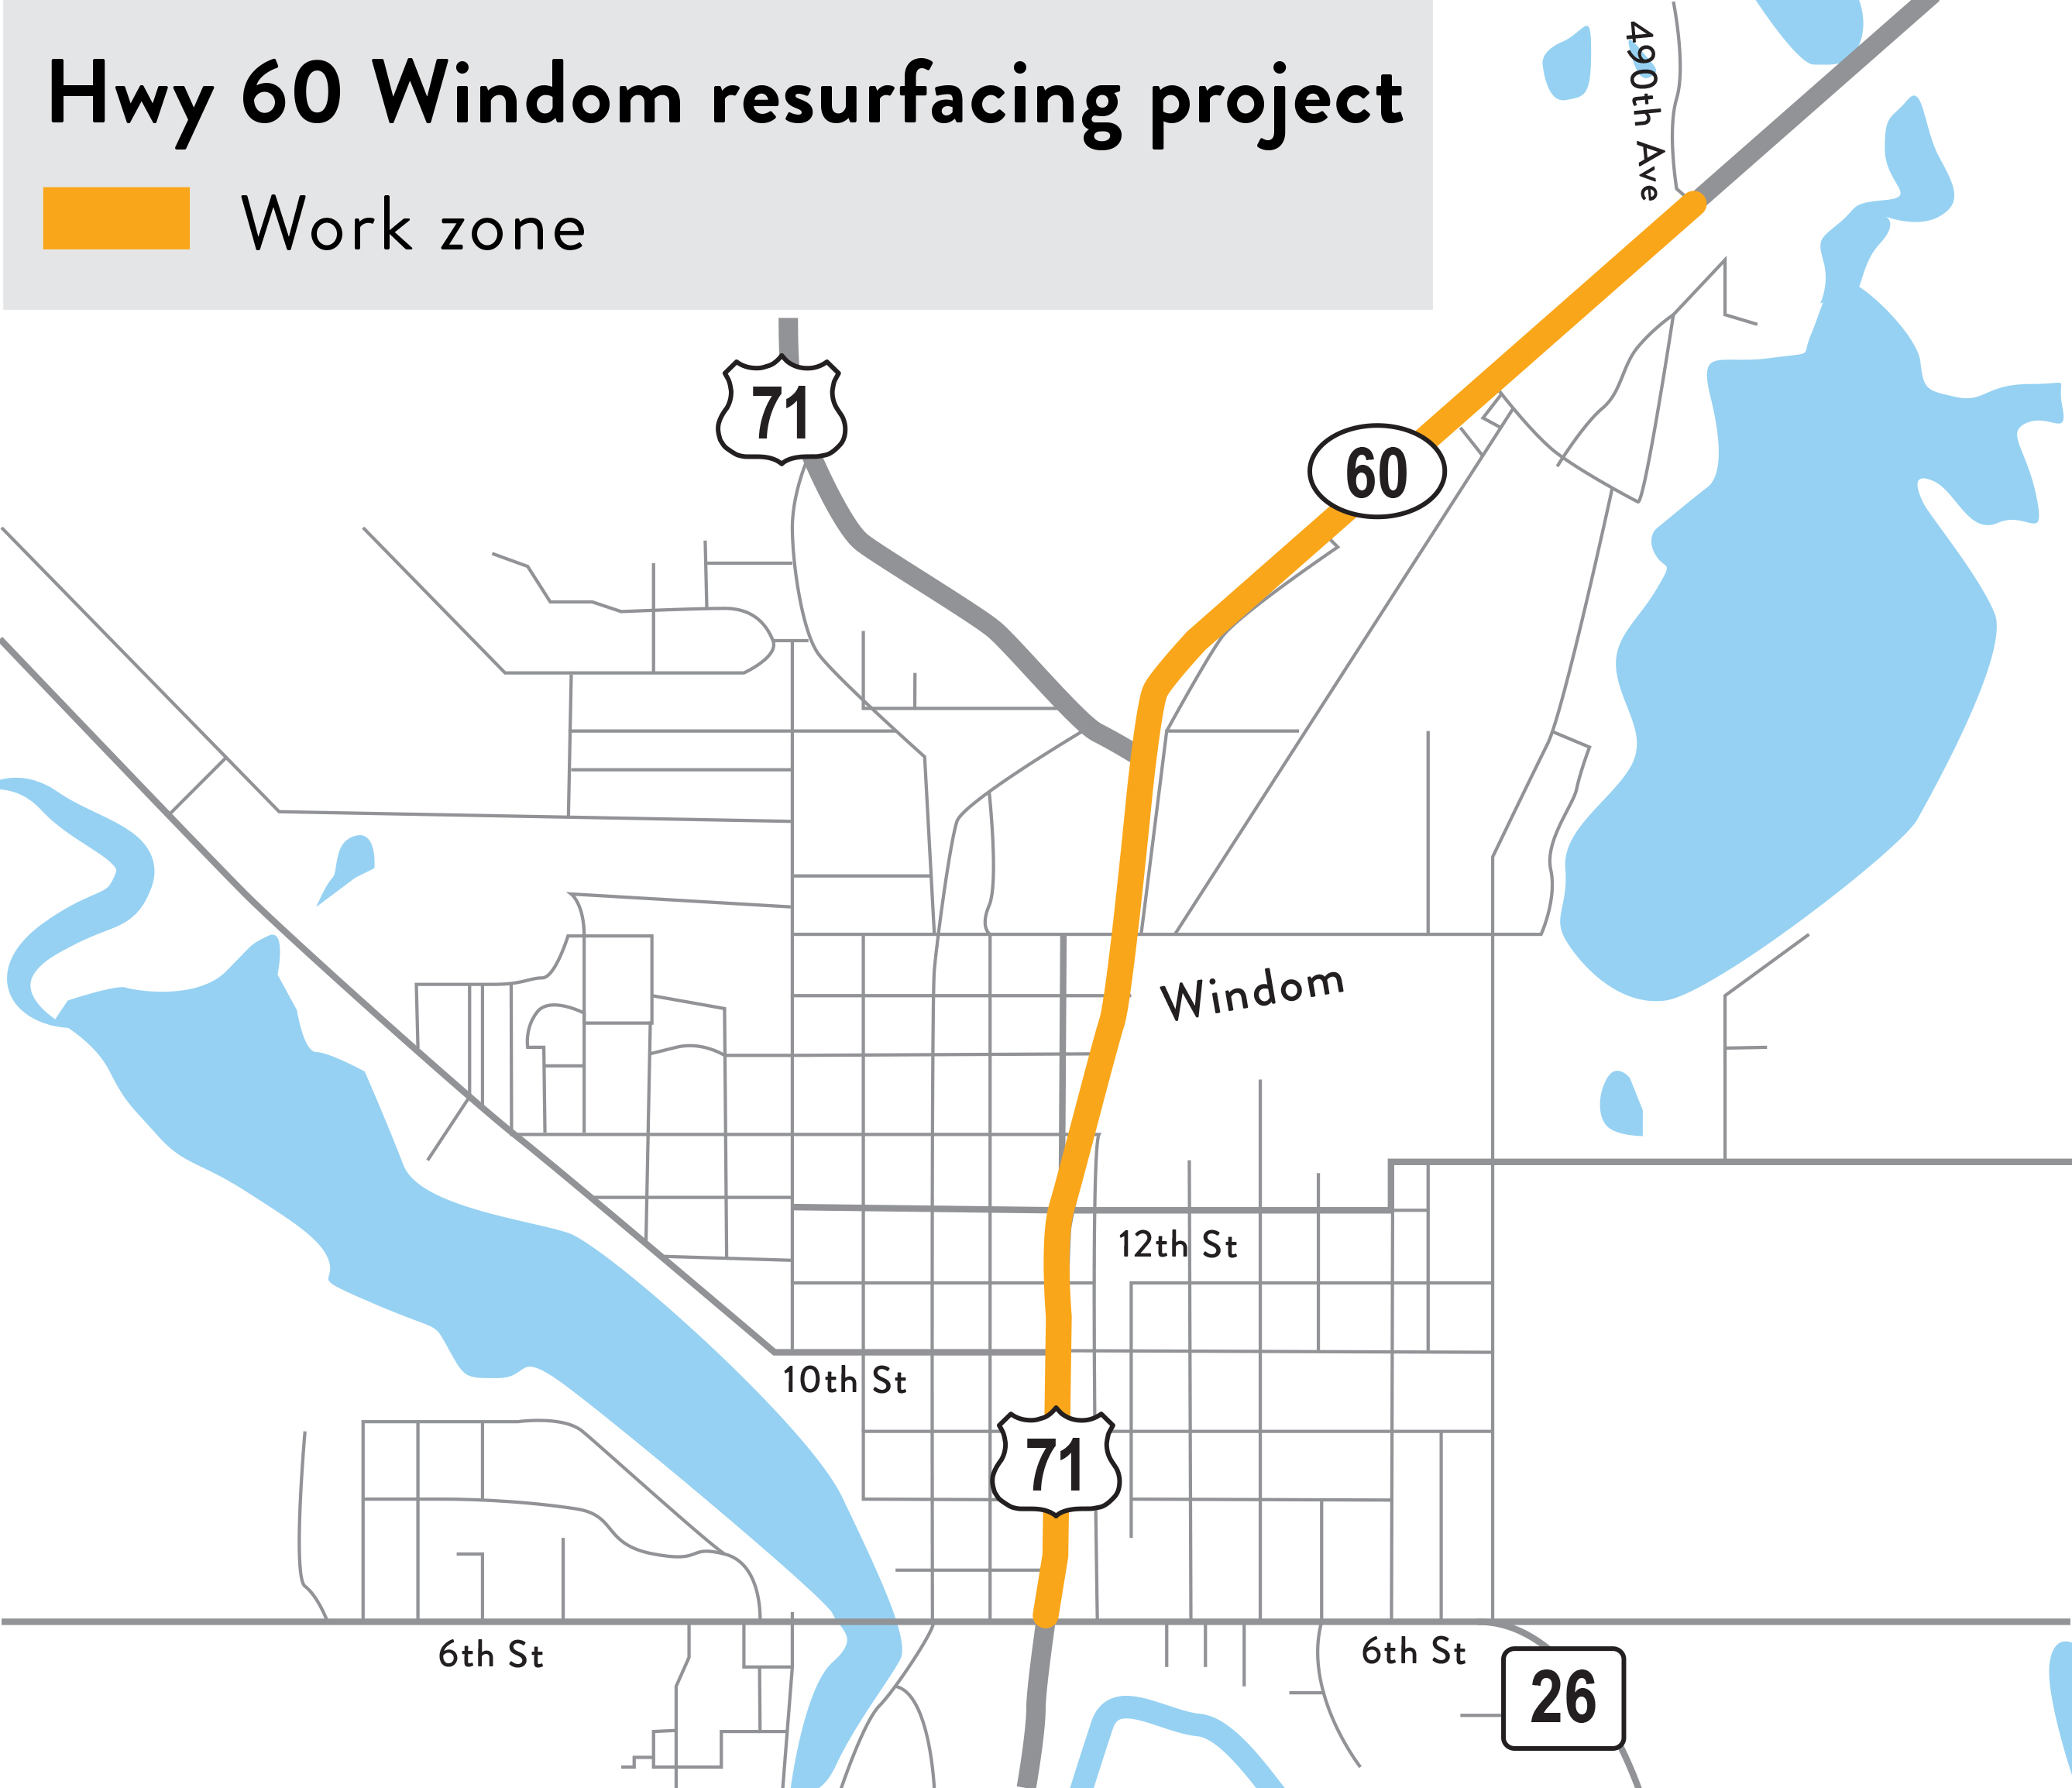 Hwy 60 in Windom project map